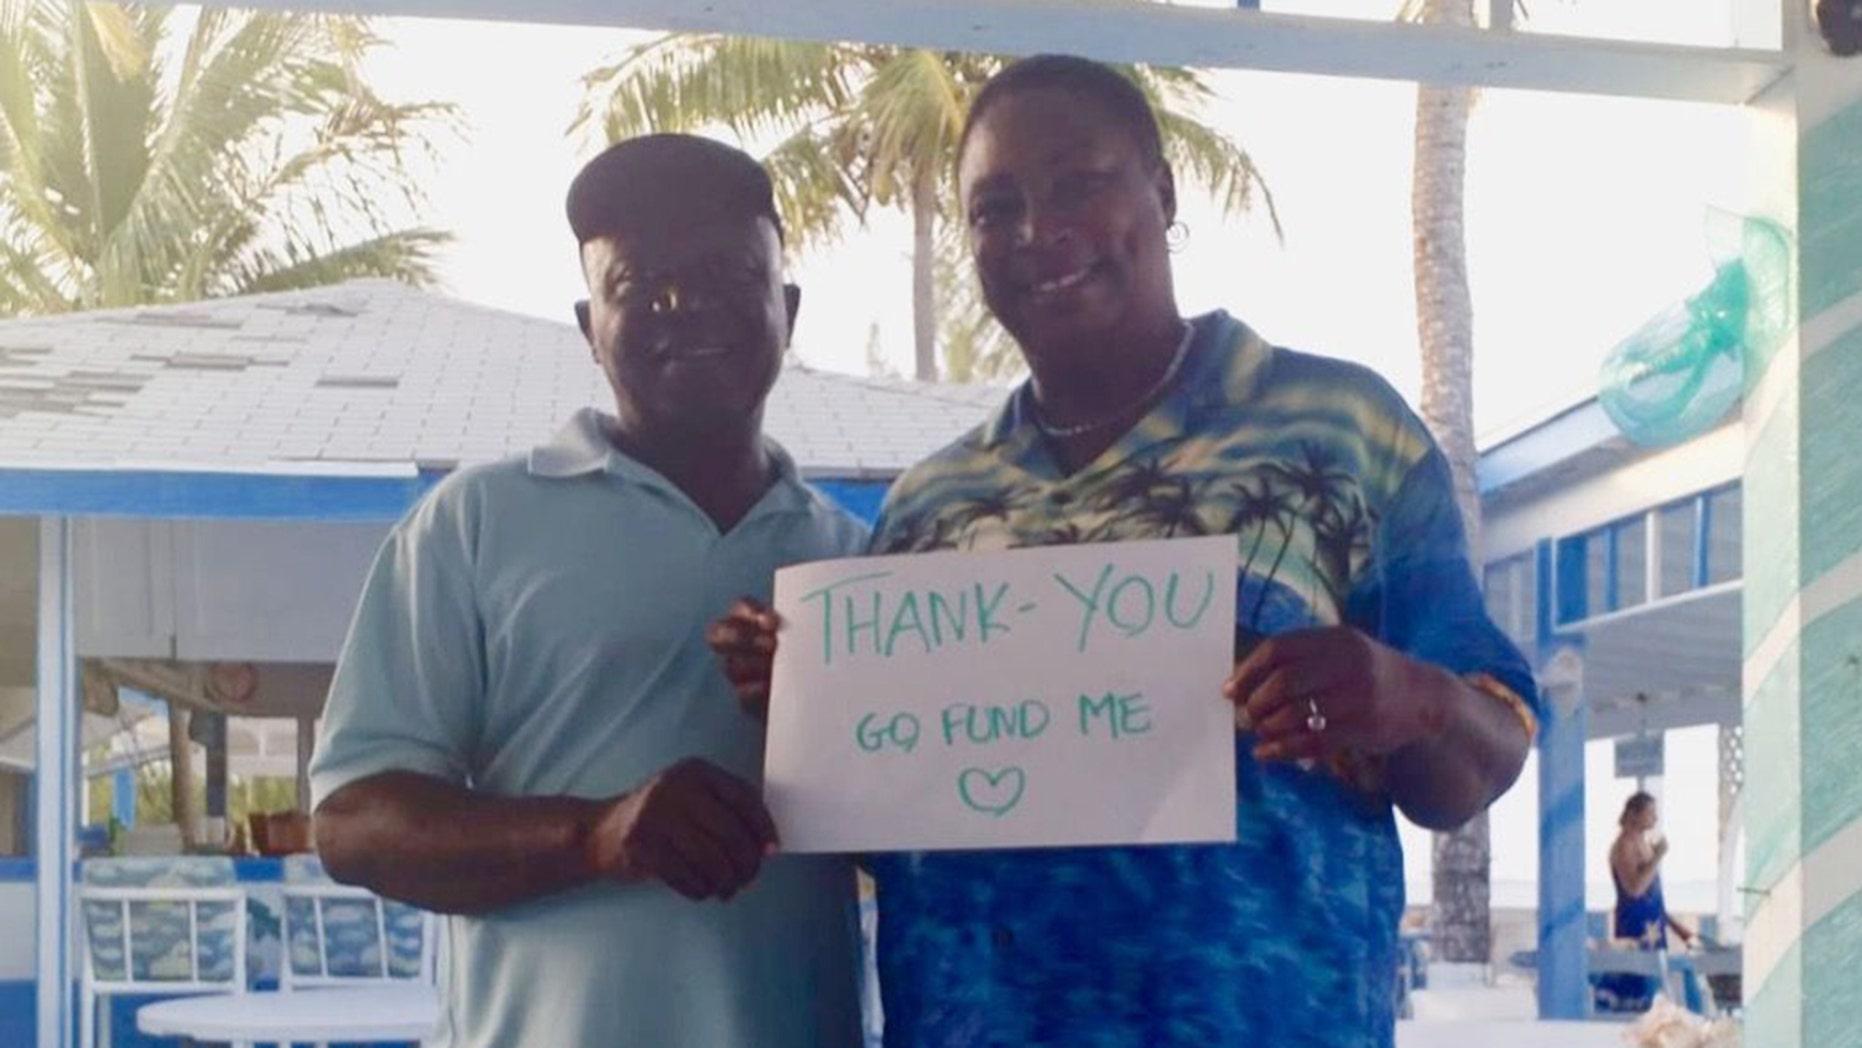 The Bahamian restaurateur who lost her life savings after the Fyre Festival debacle has raised over $161,000 thanks to an online fundraiser.